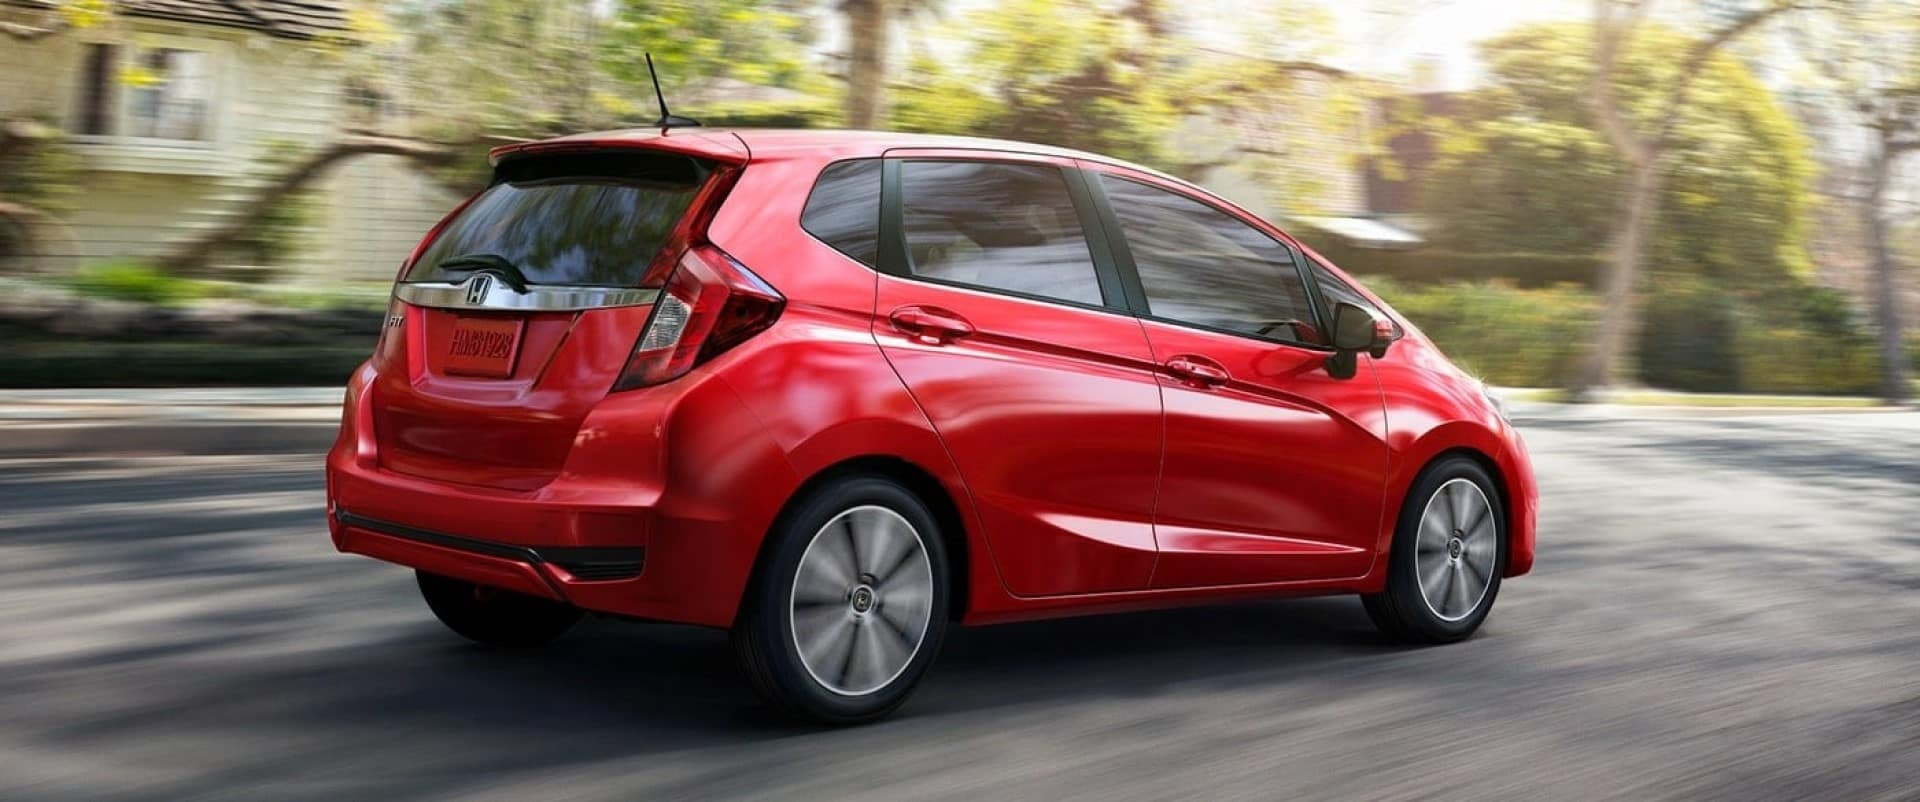 Honda_Fit_Red_Driving_In_City